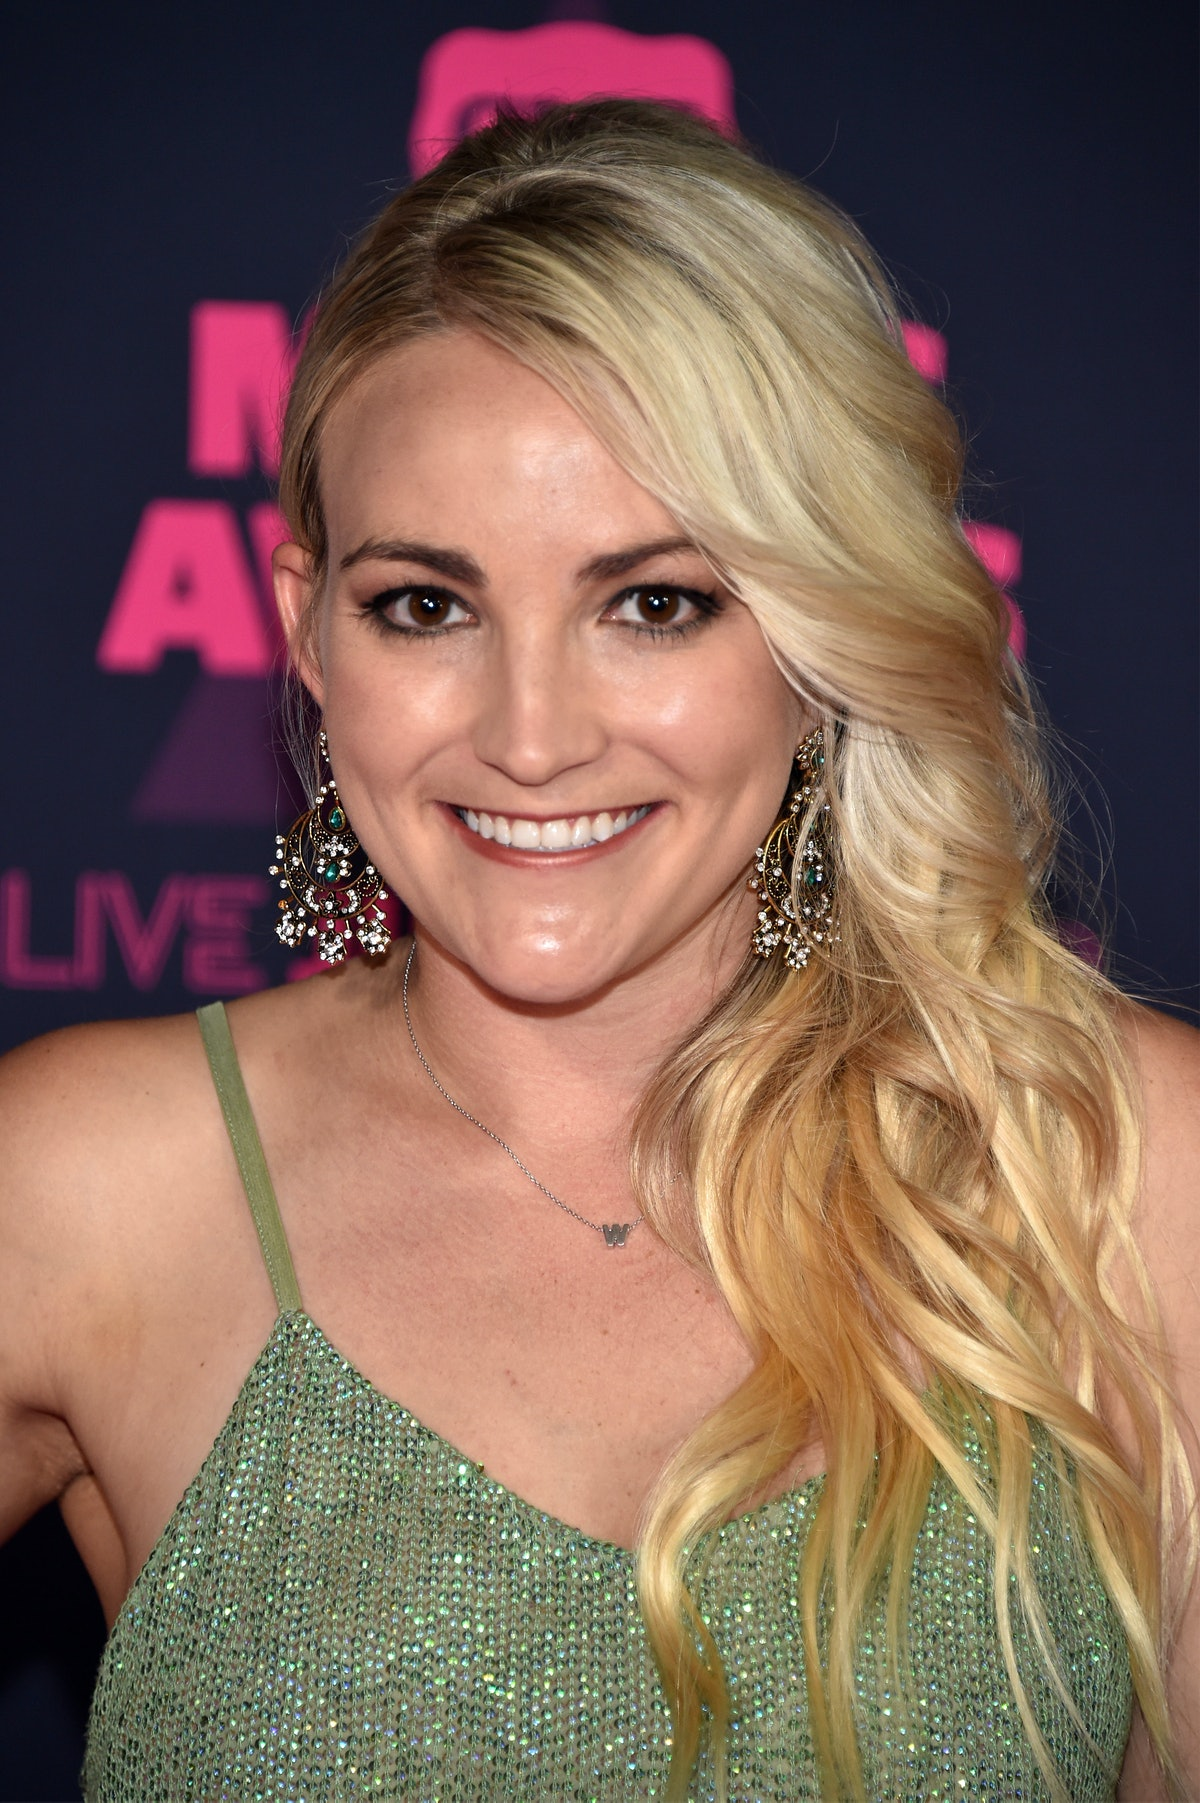 Jamie Lynn Spears disabled Instagram comments after her sister Britney's shocking hearing.